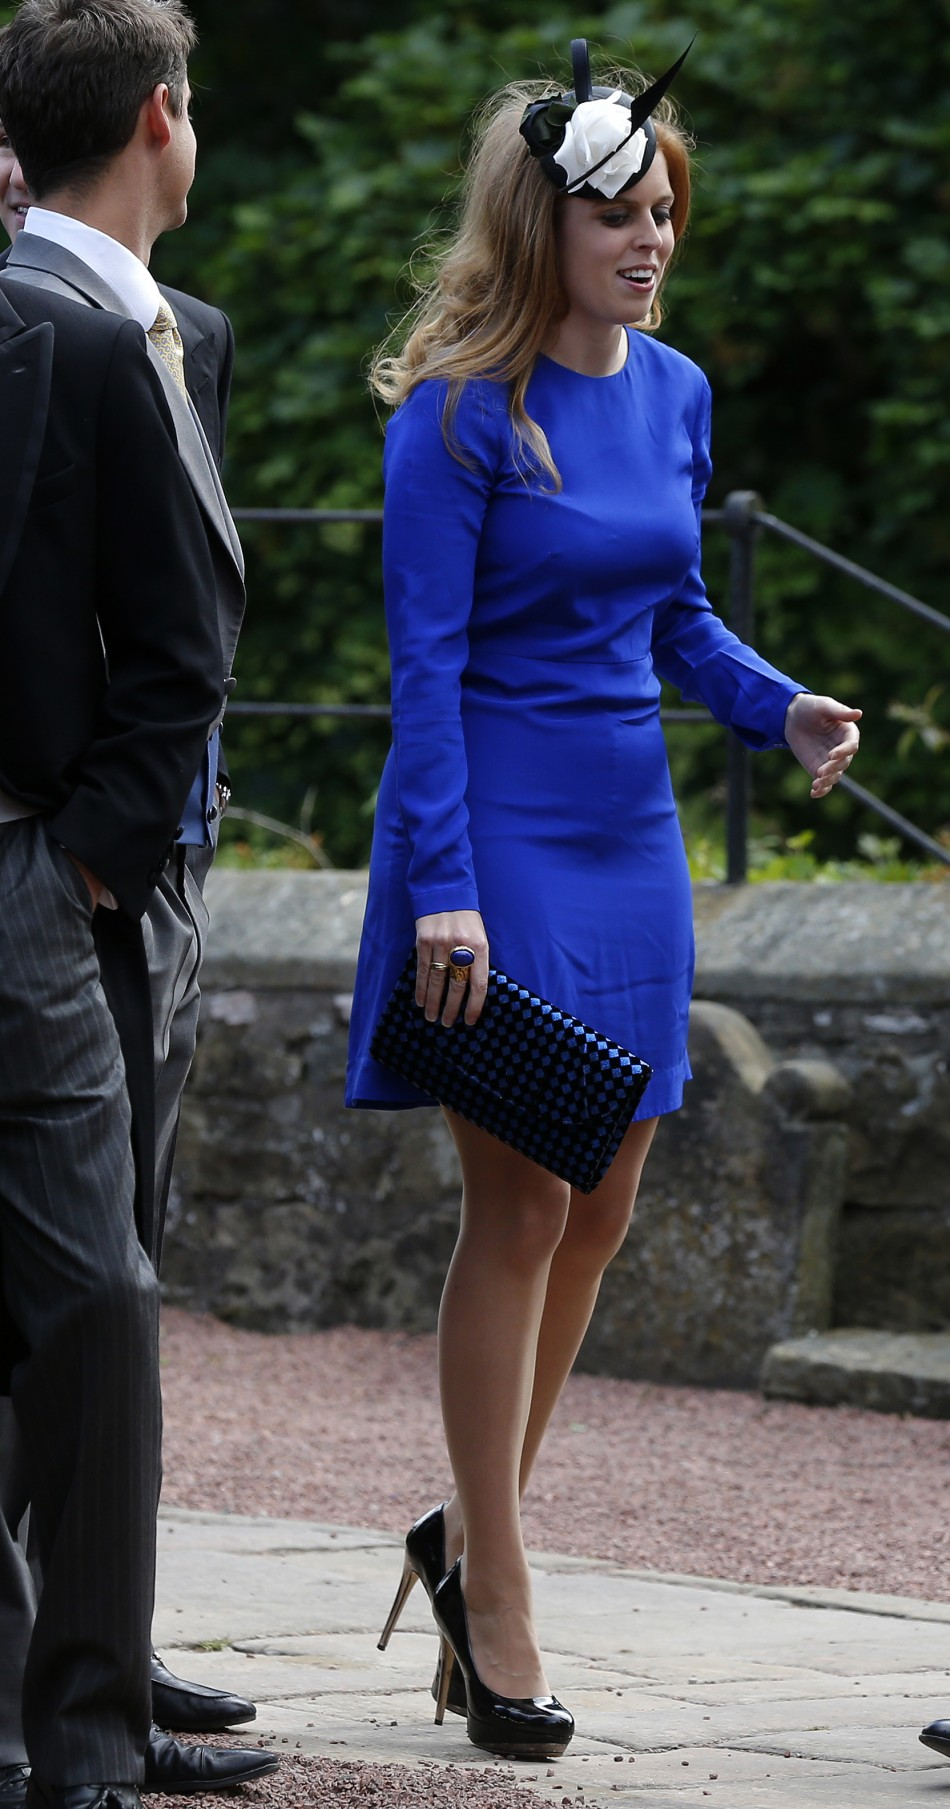 Princess Beatrice R arrives for the wedding